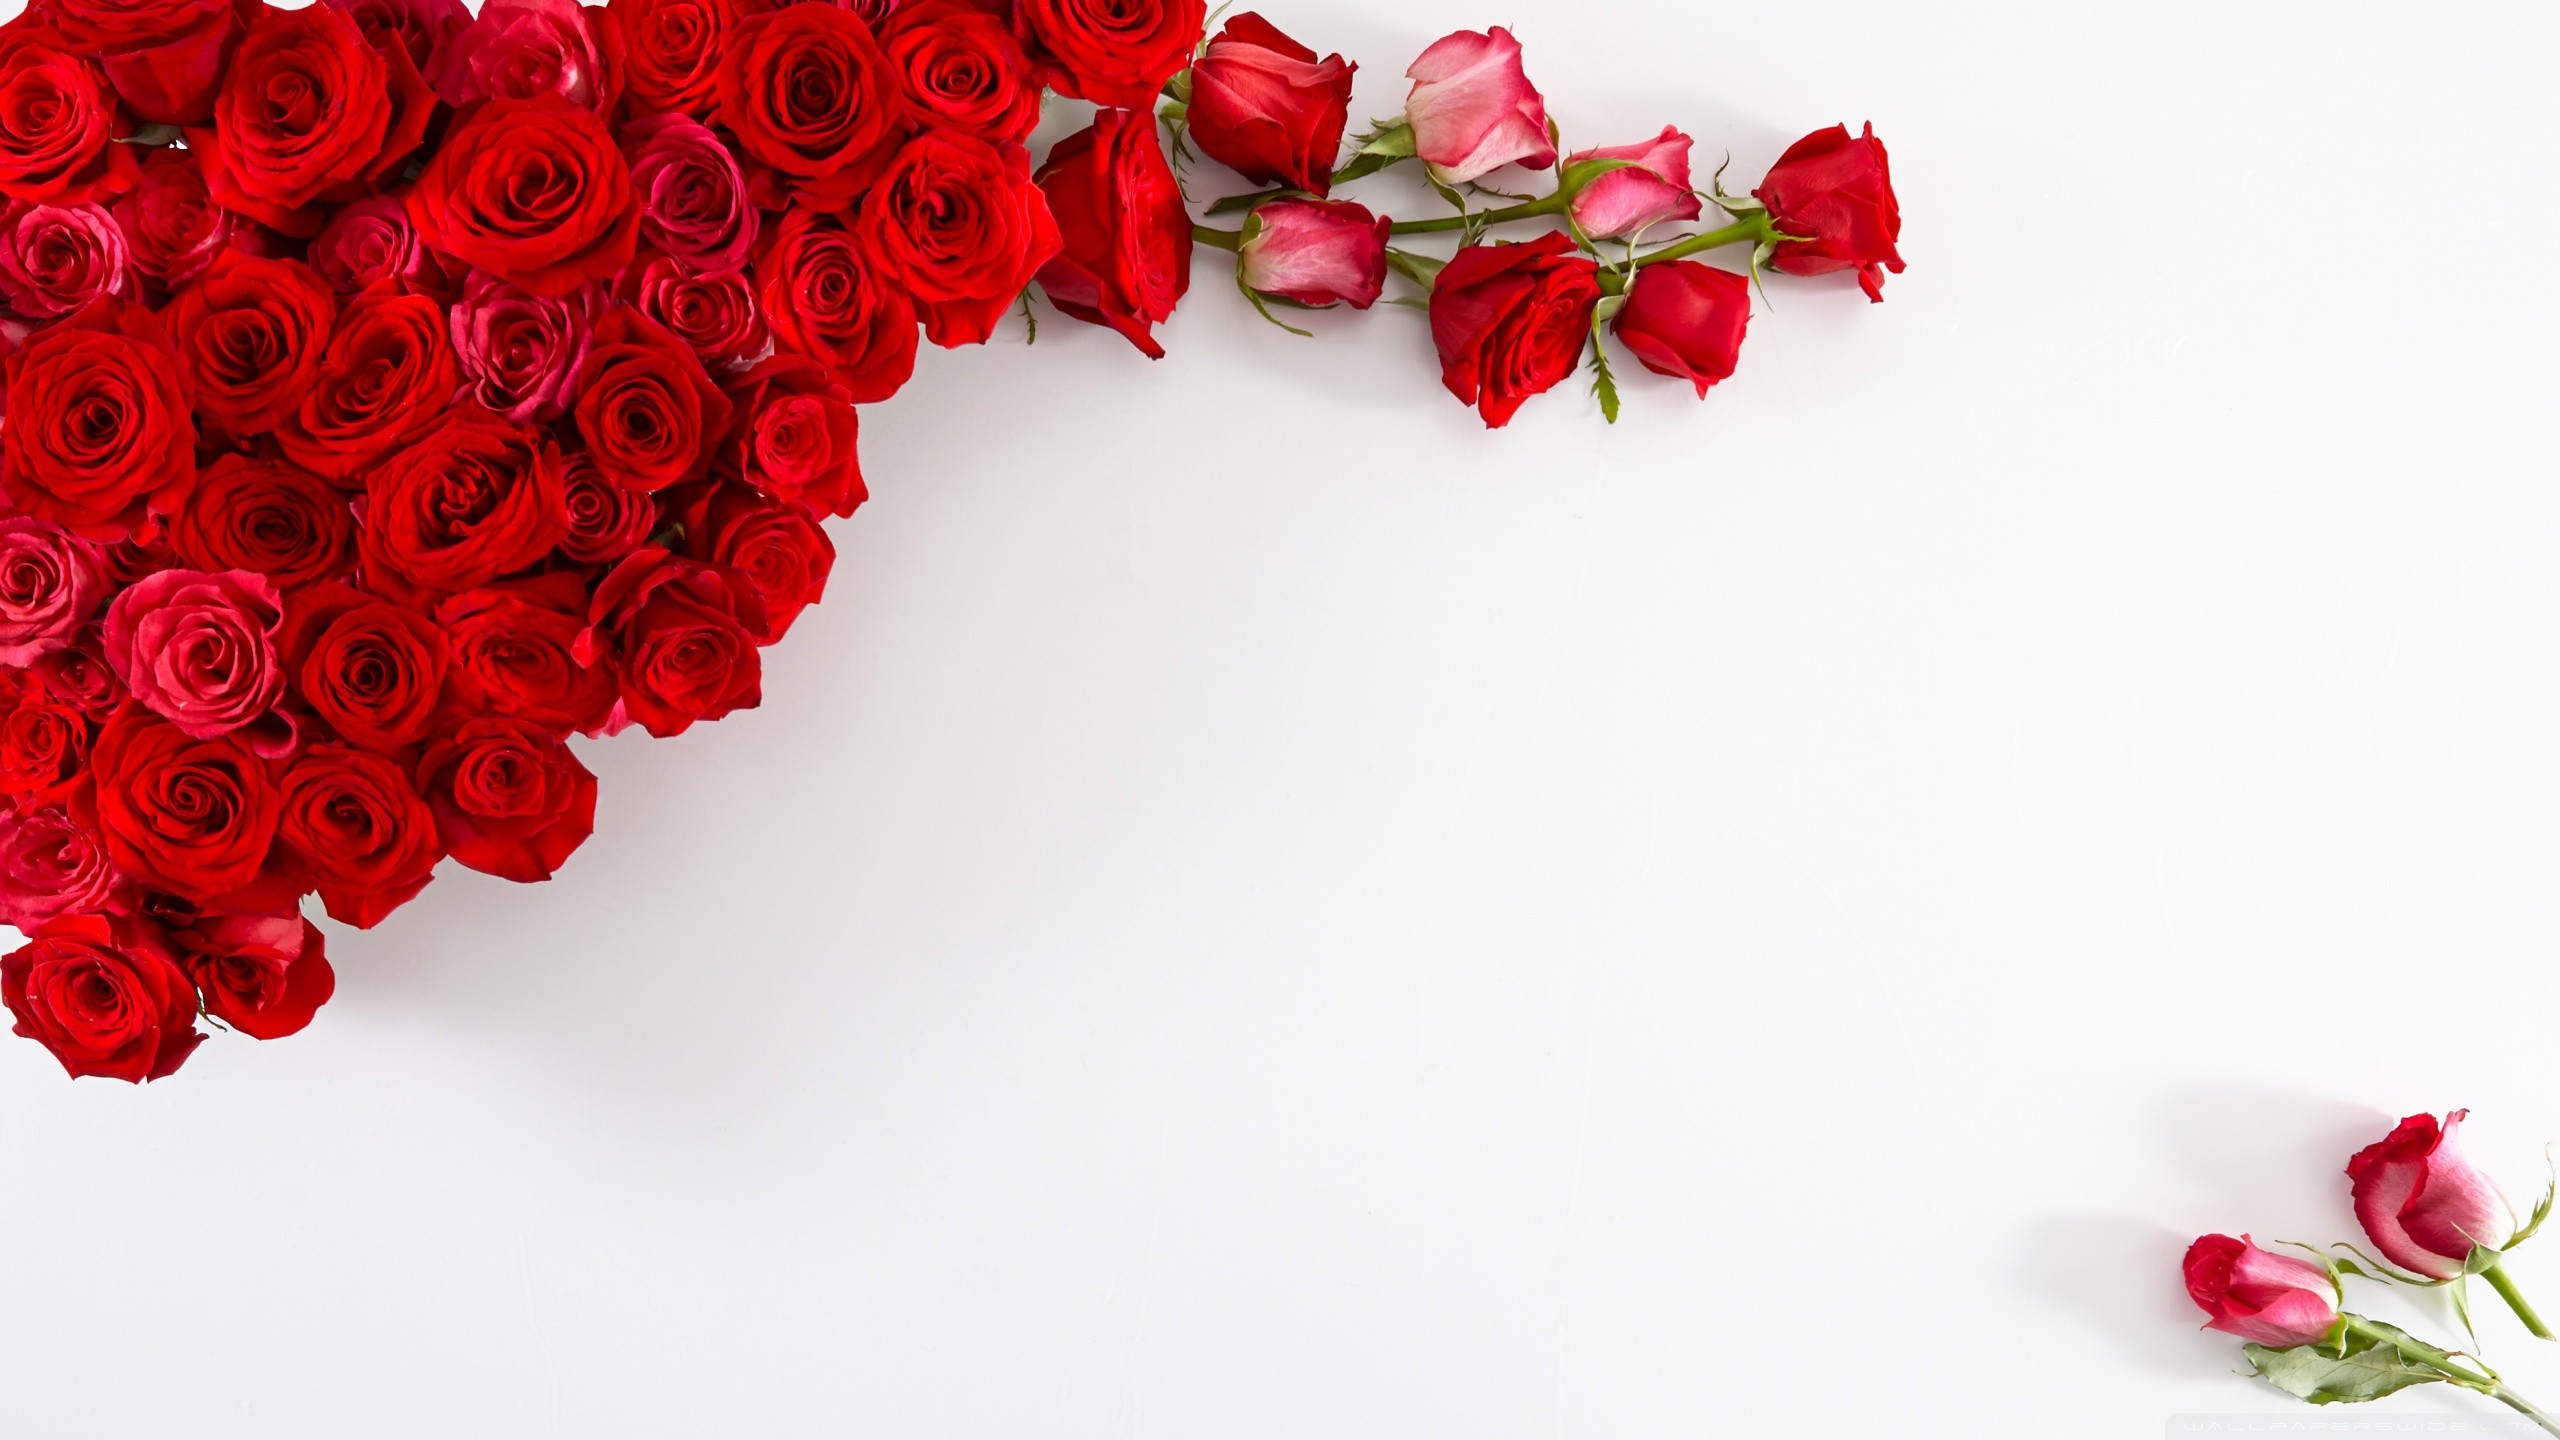 Red Roses on White Background HD desktop wallpaper : Widescreen